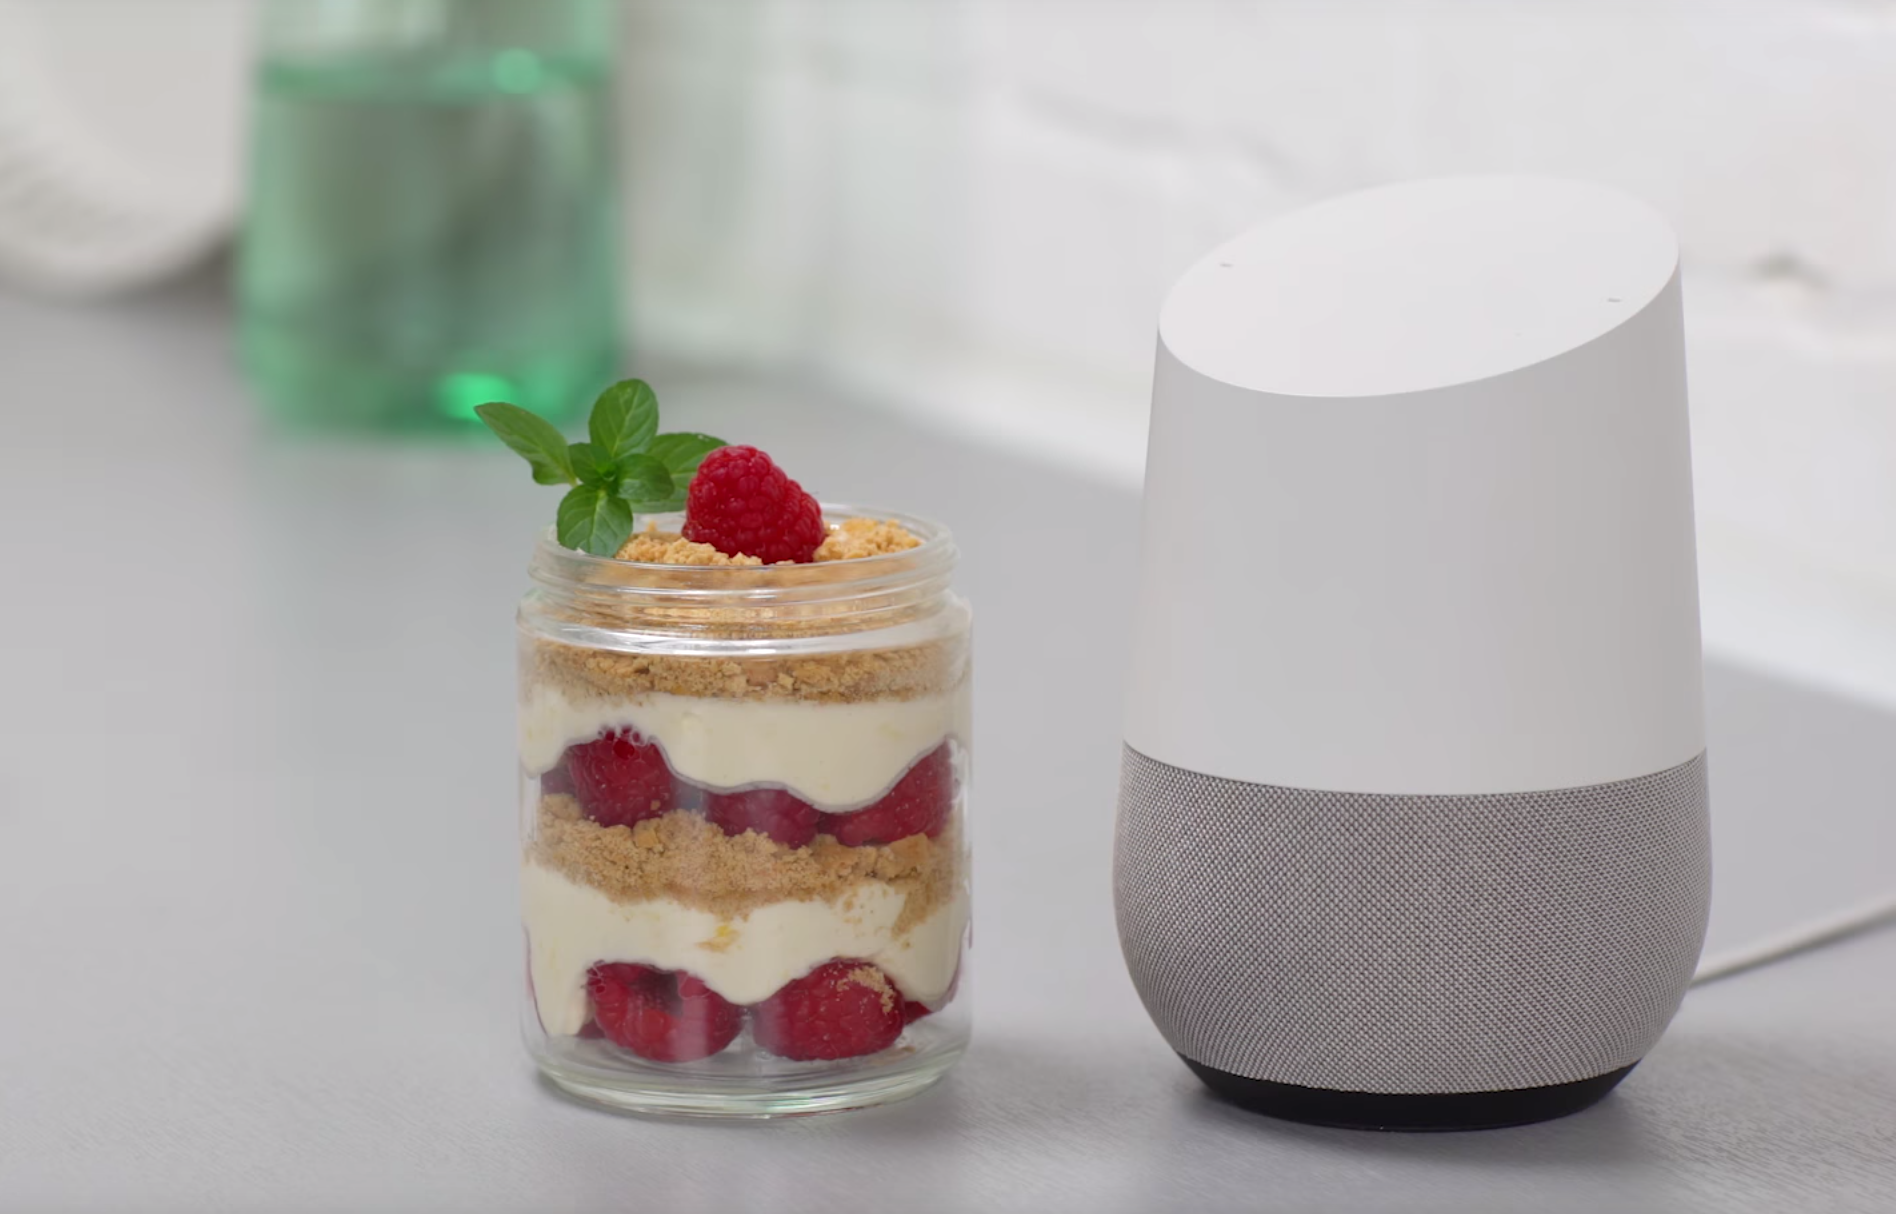 Google Home Speakers Can Now Connect to Other Bluetooth Speakers